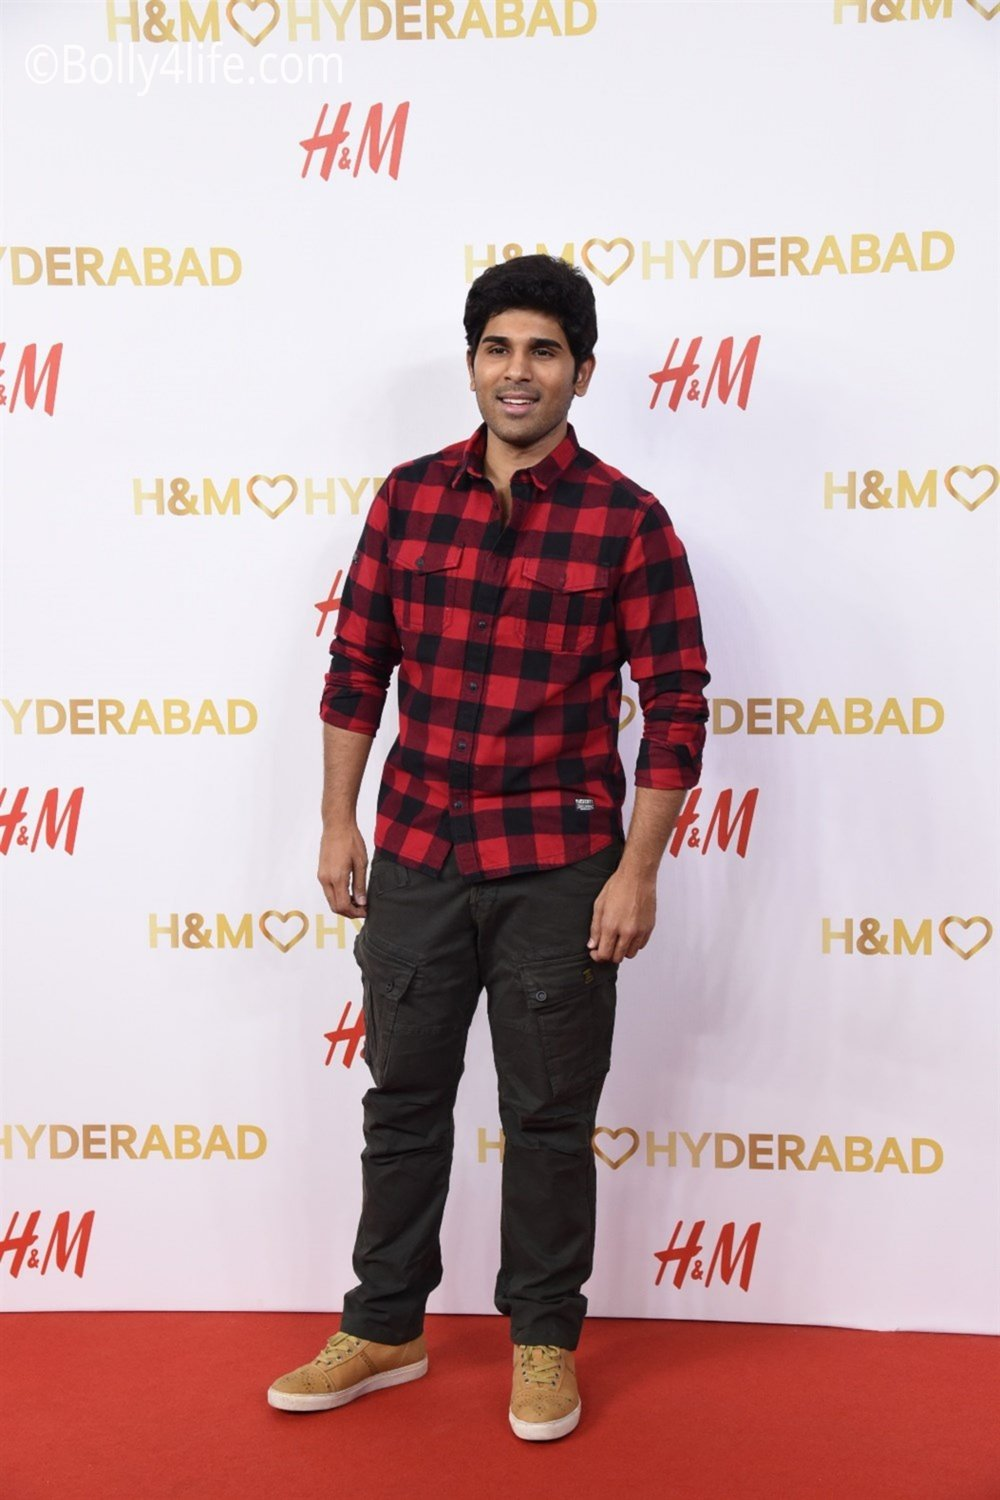 hm-hyderabad-grand-opening-at-inorbit-mall-5edc531.jpg